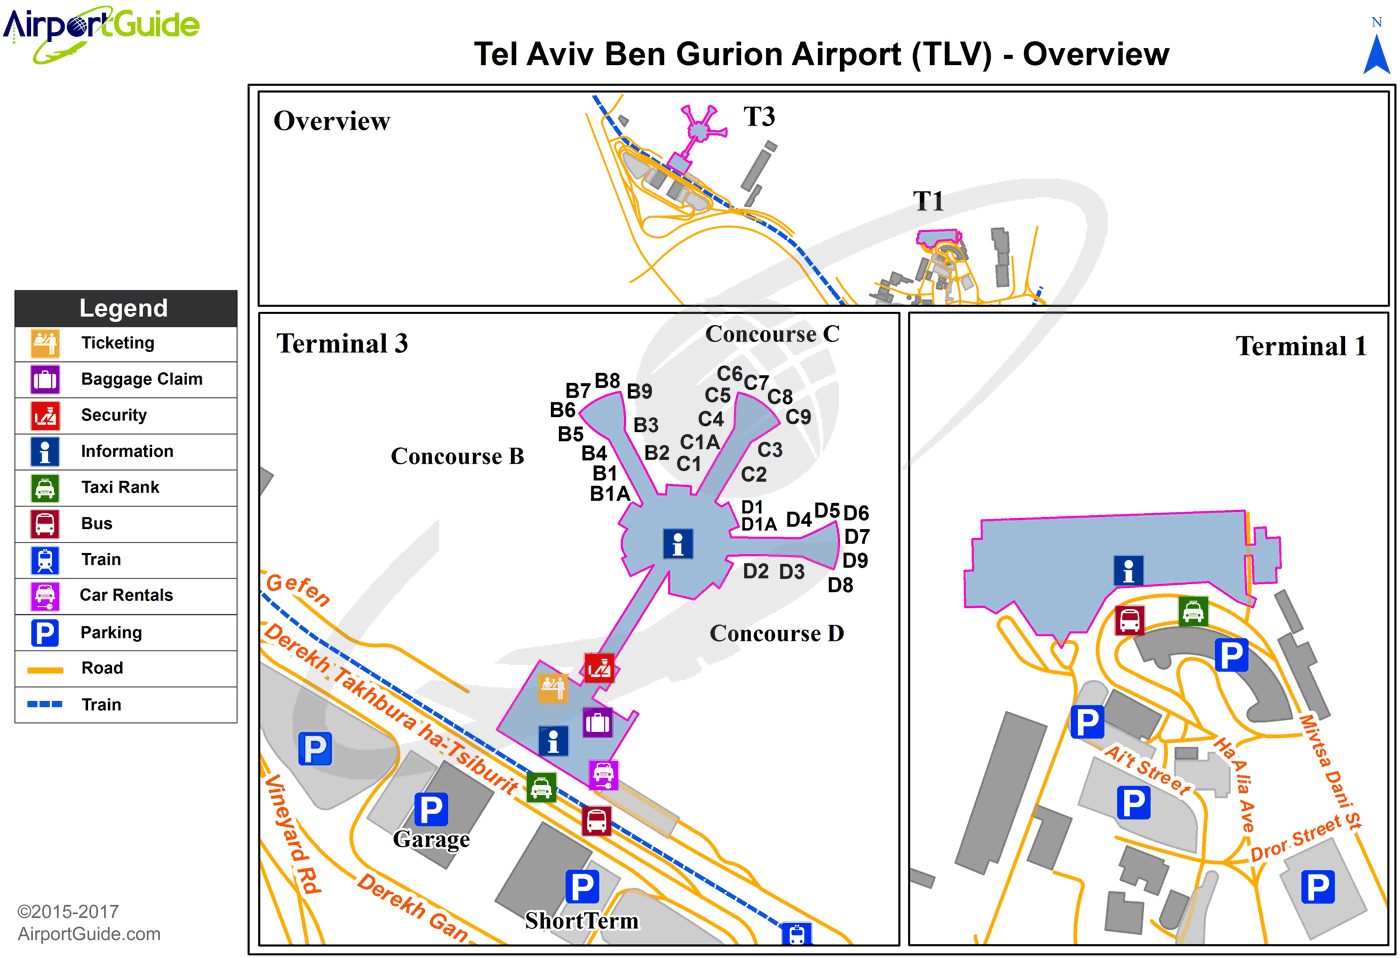 Tel Aviv/Yafo Ben Gurion International (TLV) Airport